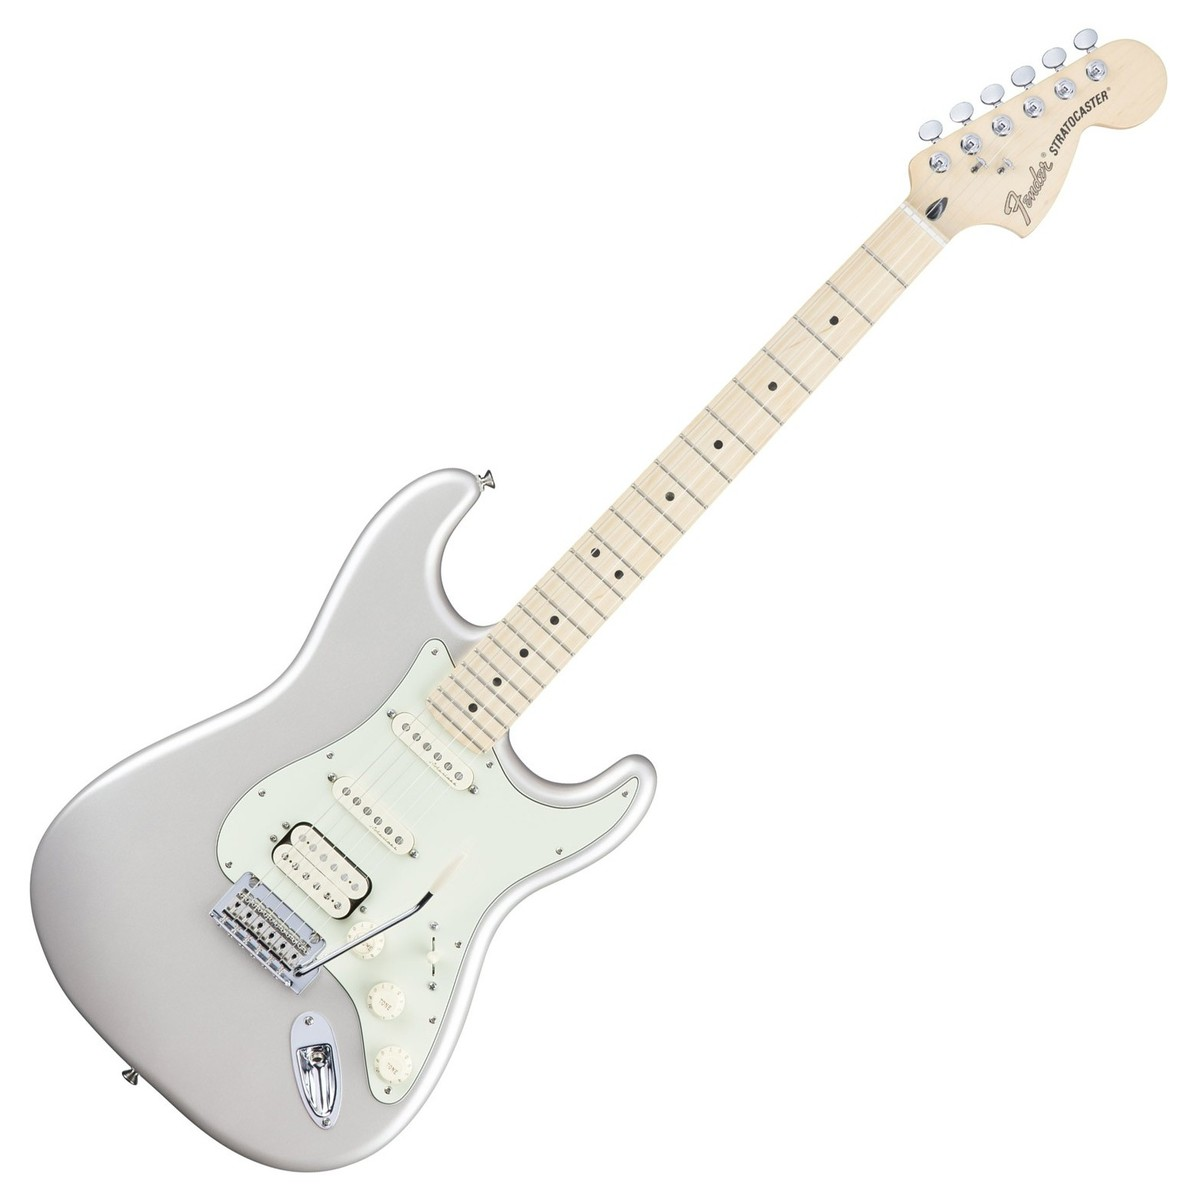 fender deluxe stratocaster hss electric guitar blizzard pearl at gear4music. Black Bedroom Furniture Sets. Home Design Ideas